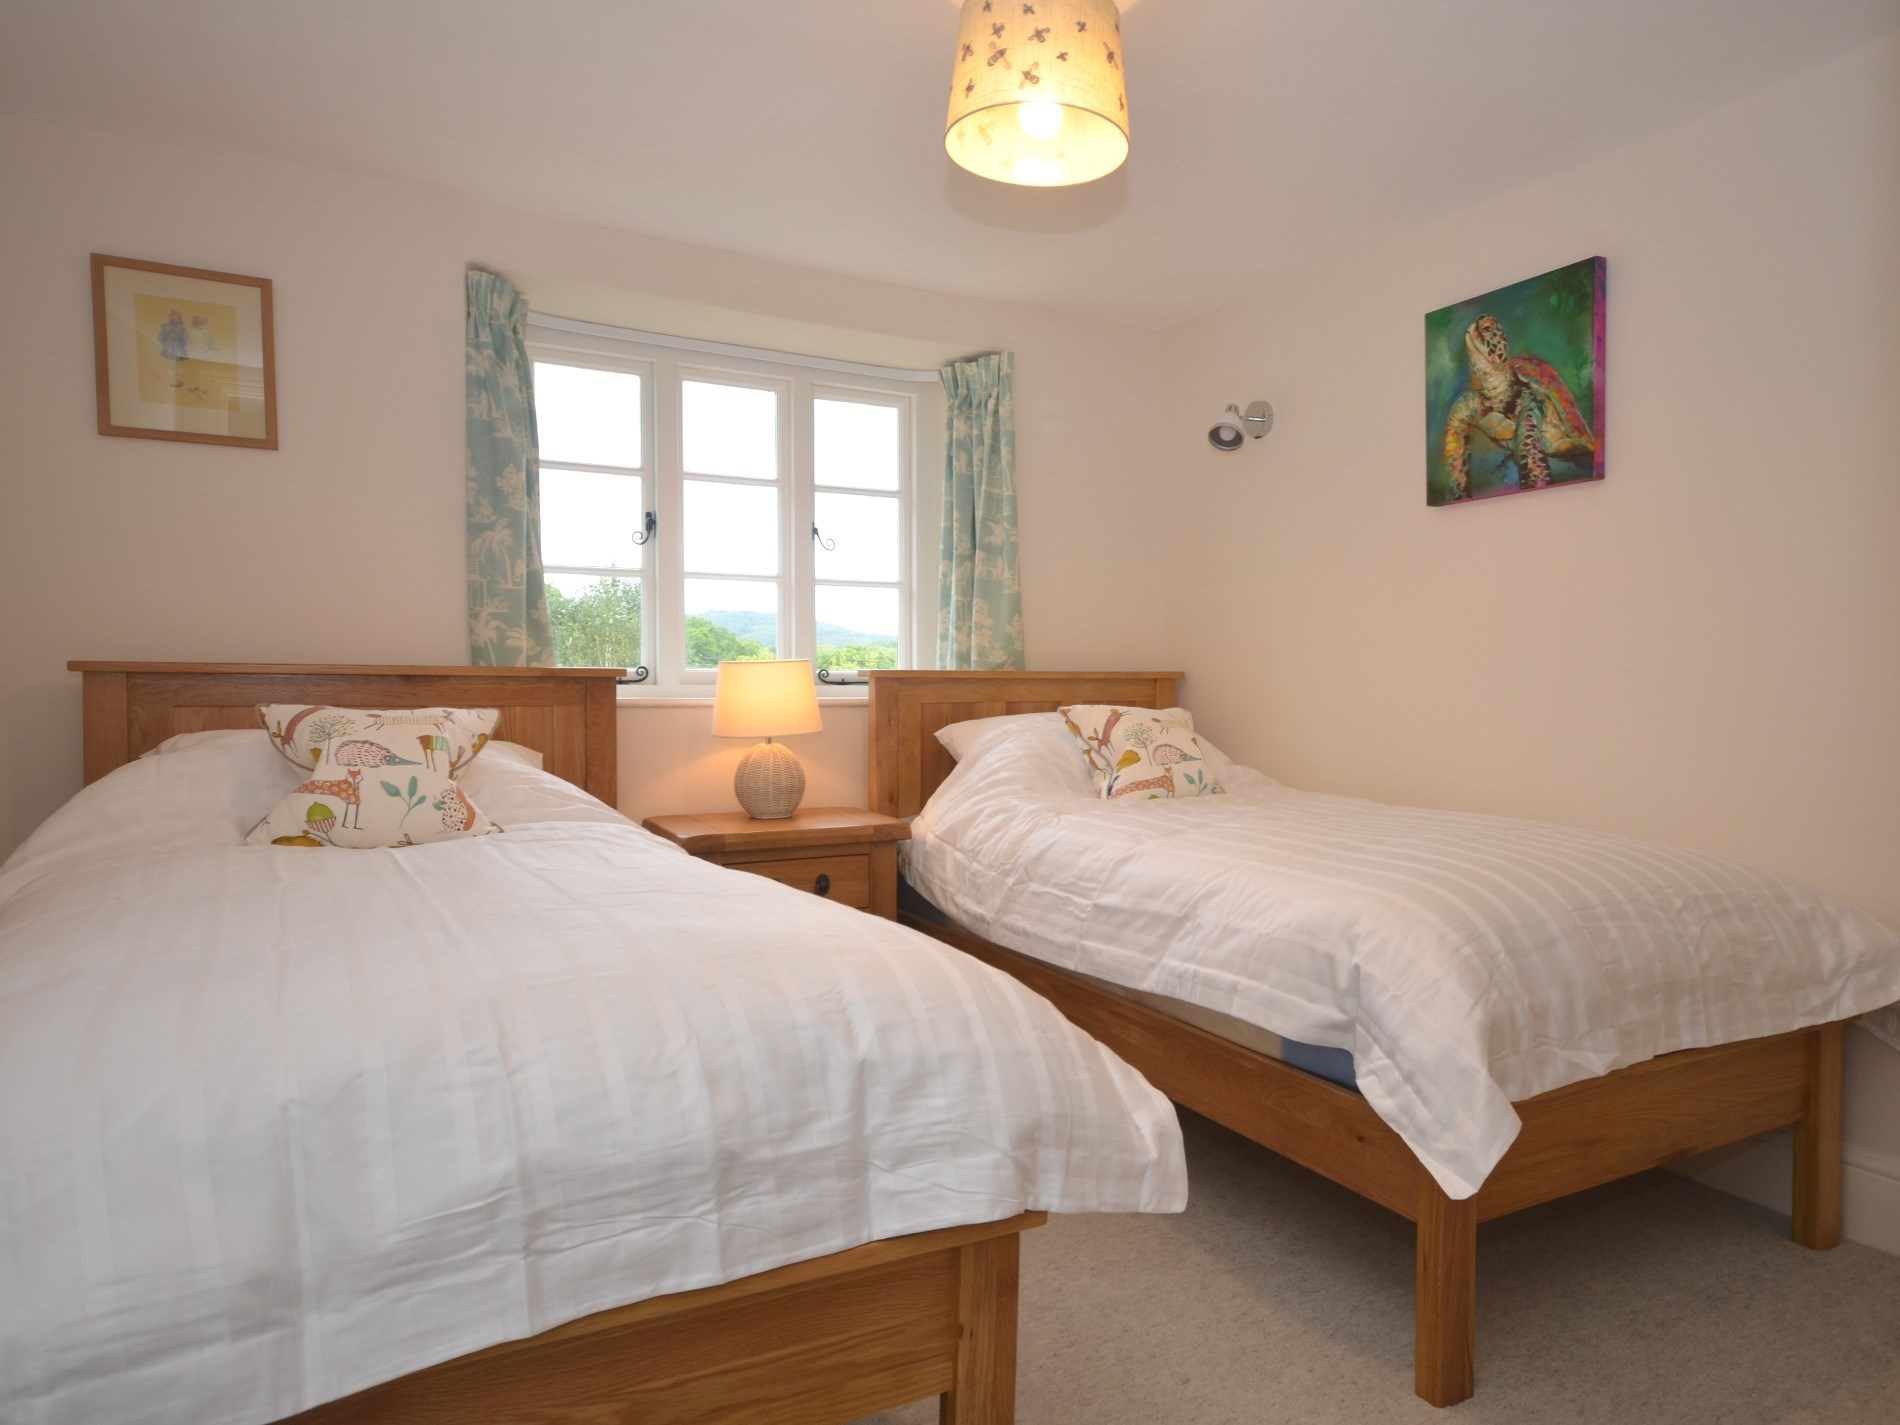 4 Bedroom Cottage in Newton Abbot, Devon